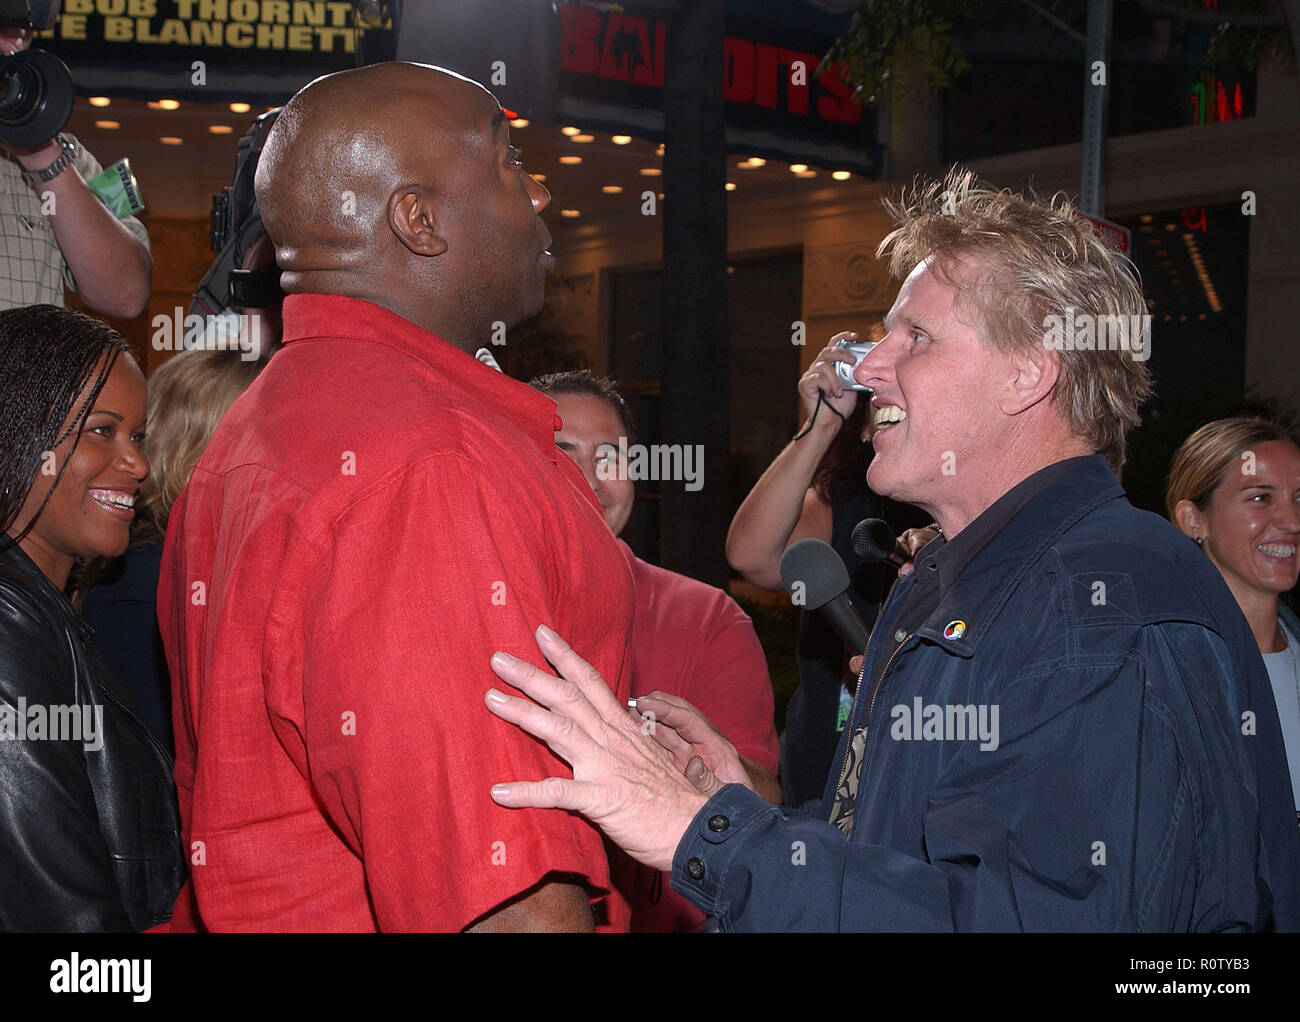 -            BusyGary_DuncanMClark10.jpgBusyGary_DuncanMClark10  Event in Hollywood Life - California, Red Carpet Event, USA, Film Industry, Celebriti - Stock Image